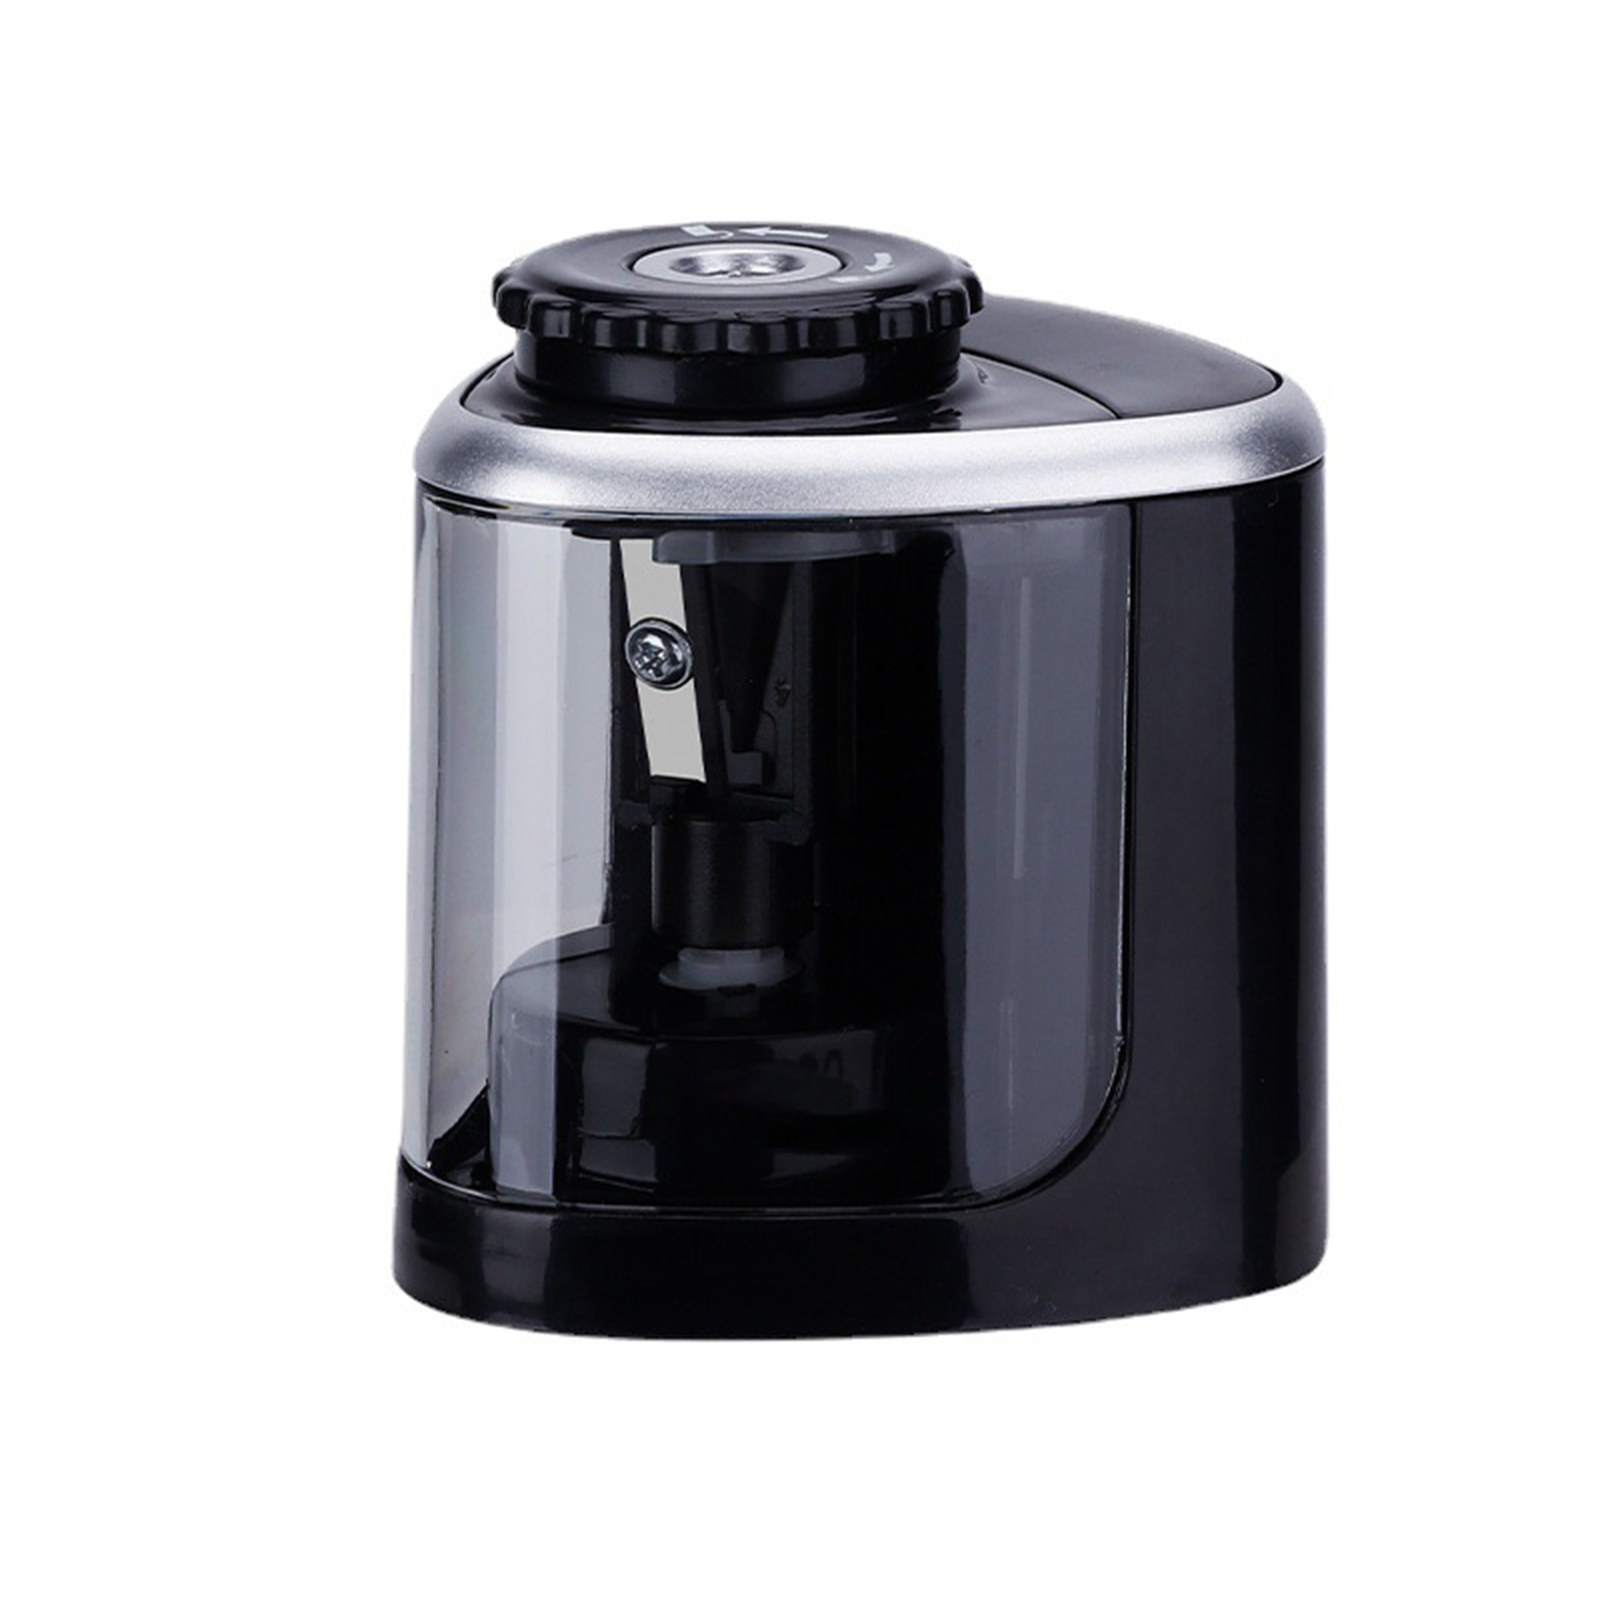 Portable Electric Pencil Sharpener Battery Operated for 6-8mm Pencil for Students Artists Home School Classroom Office